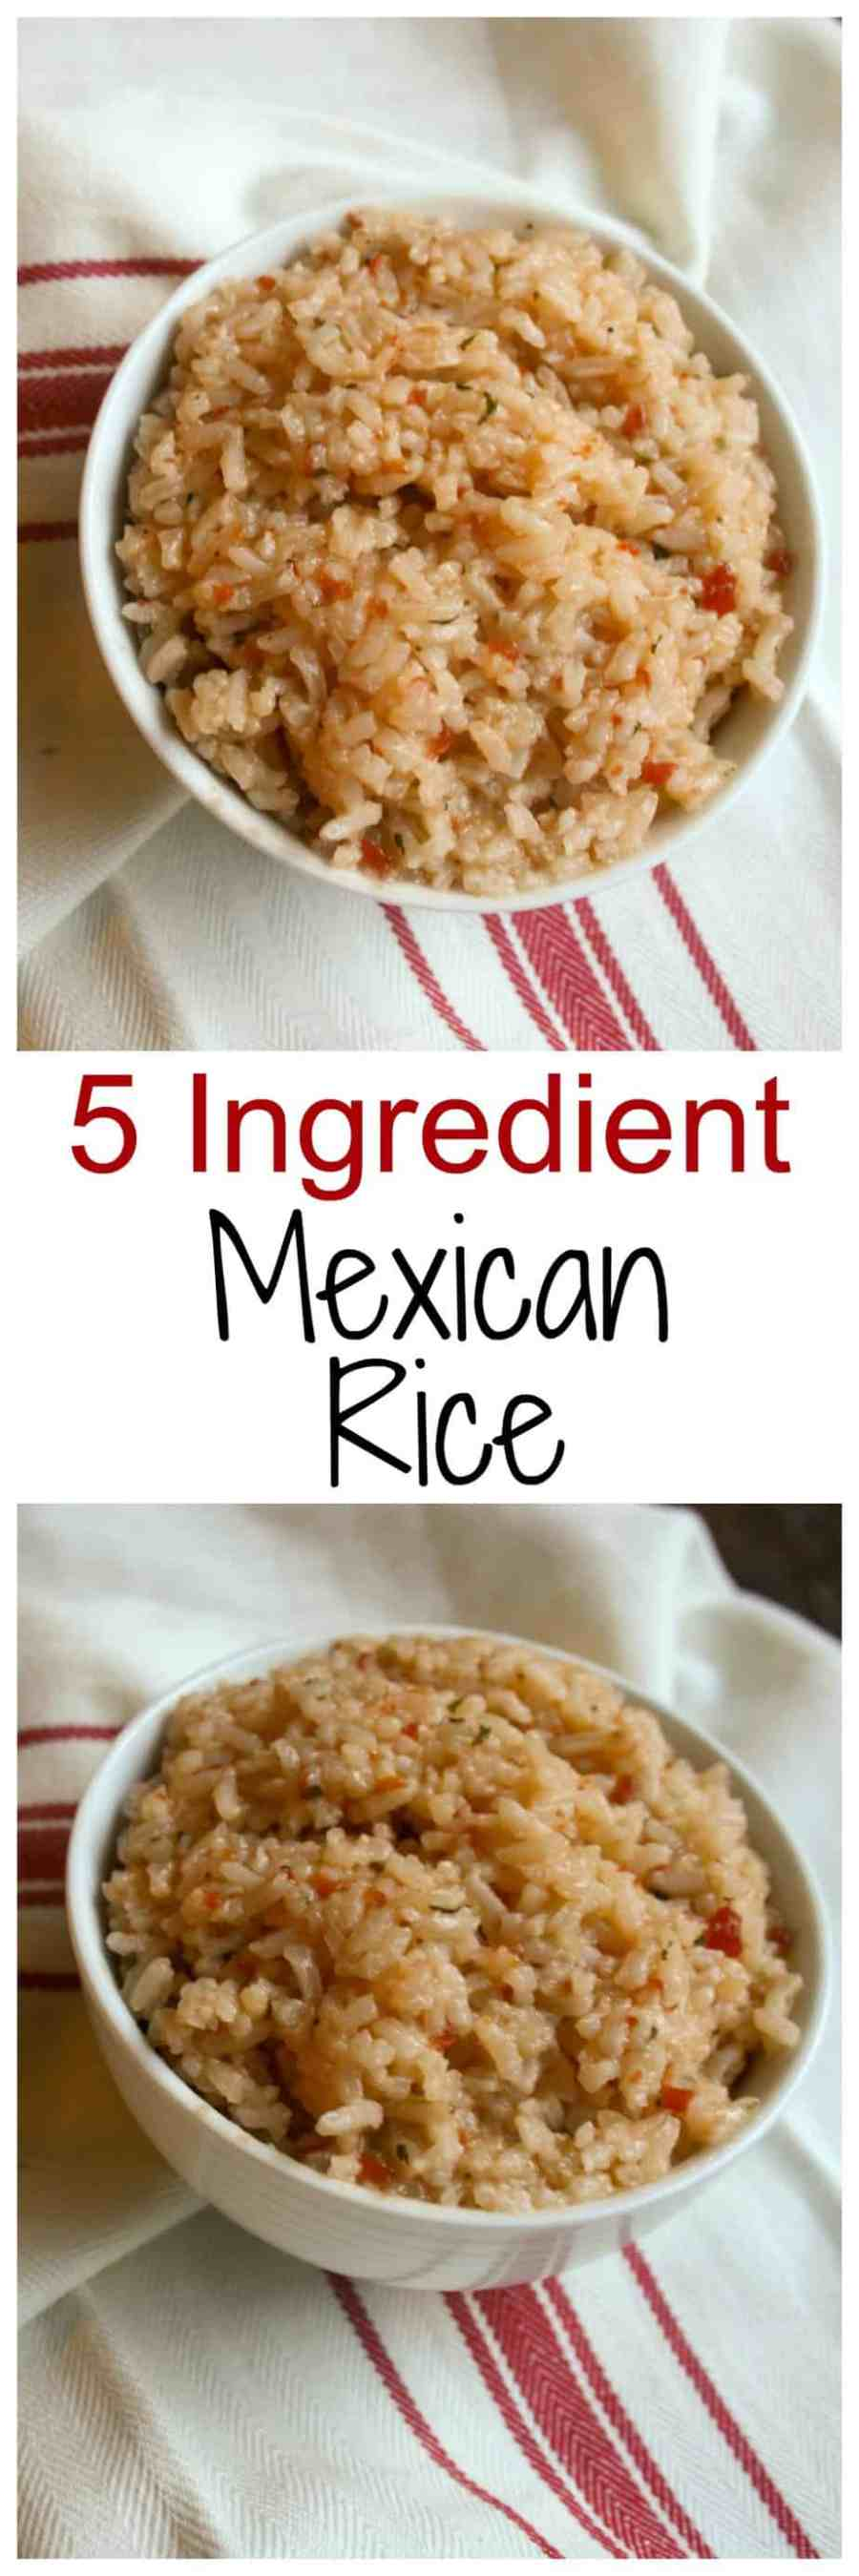 5 Ingredient Mexican rice is so easy to make and should be an addition at every taco night! This is a rice the whole family will love!